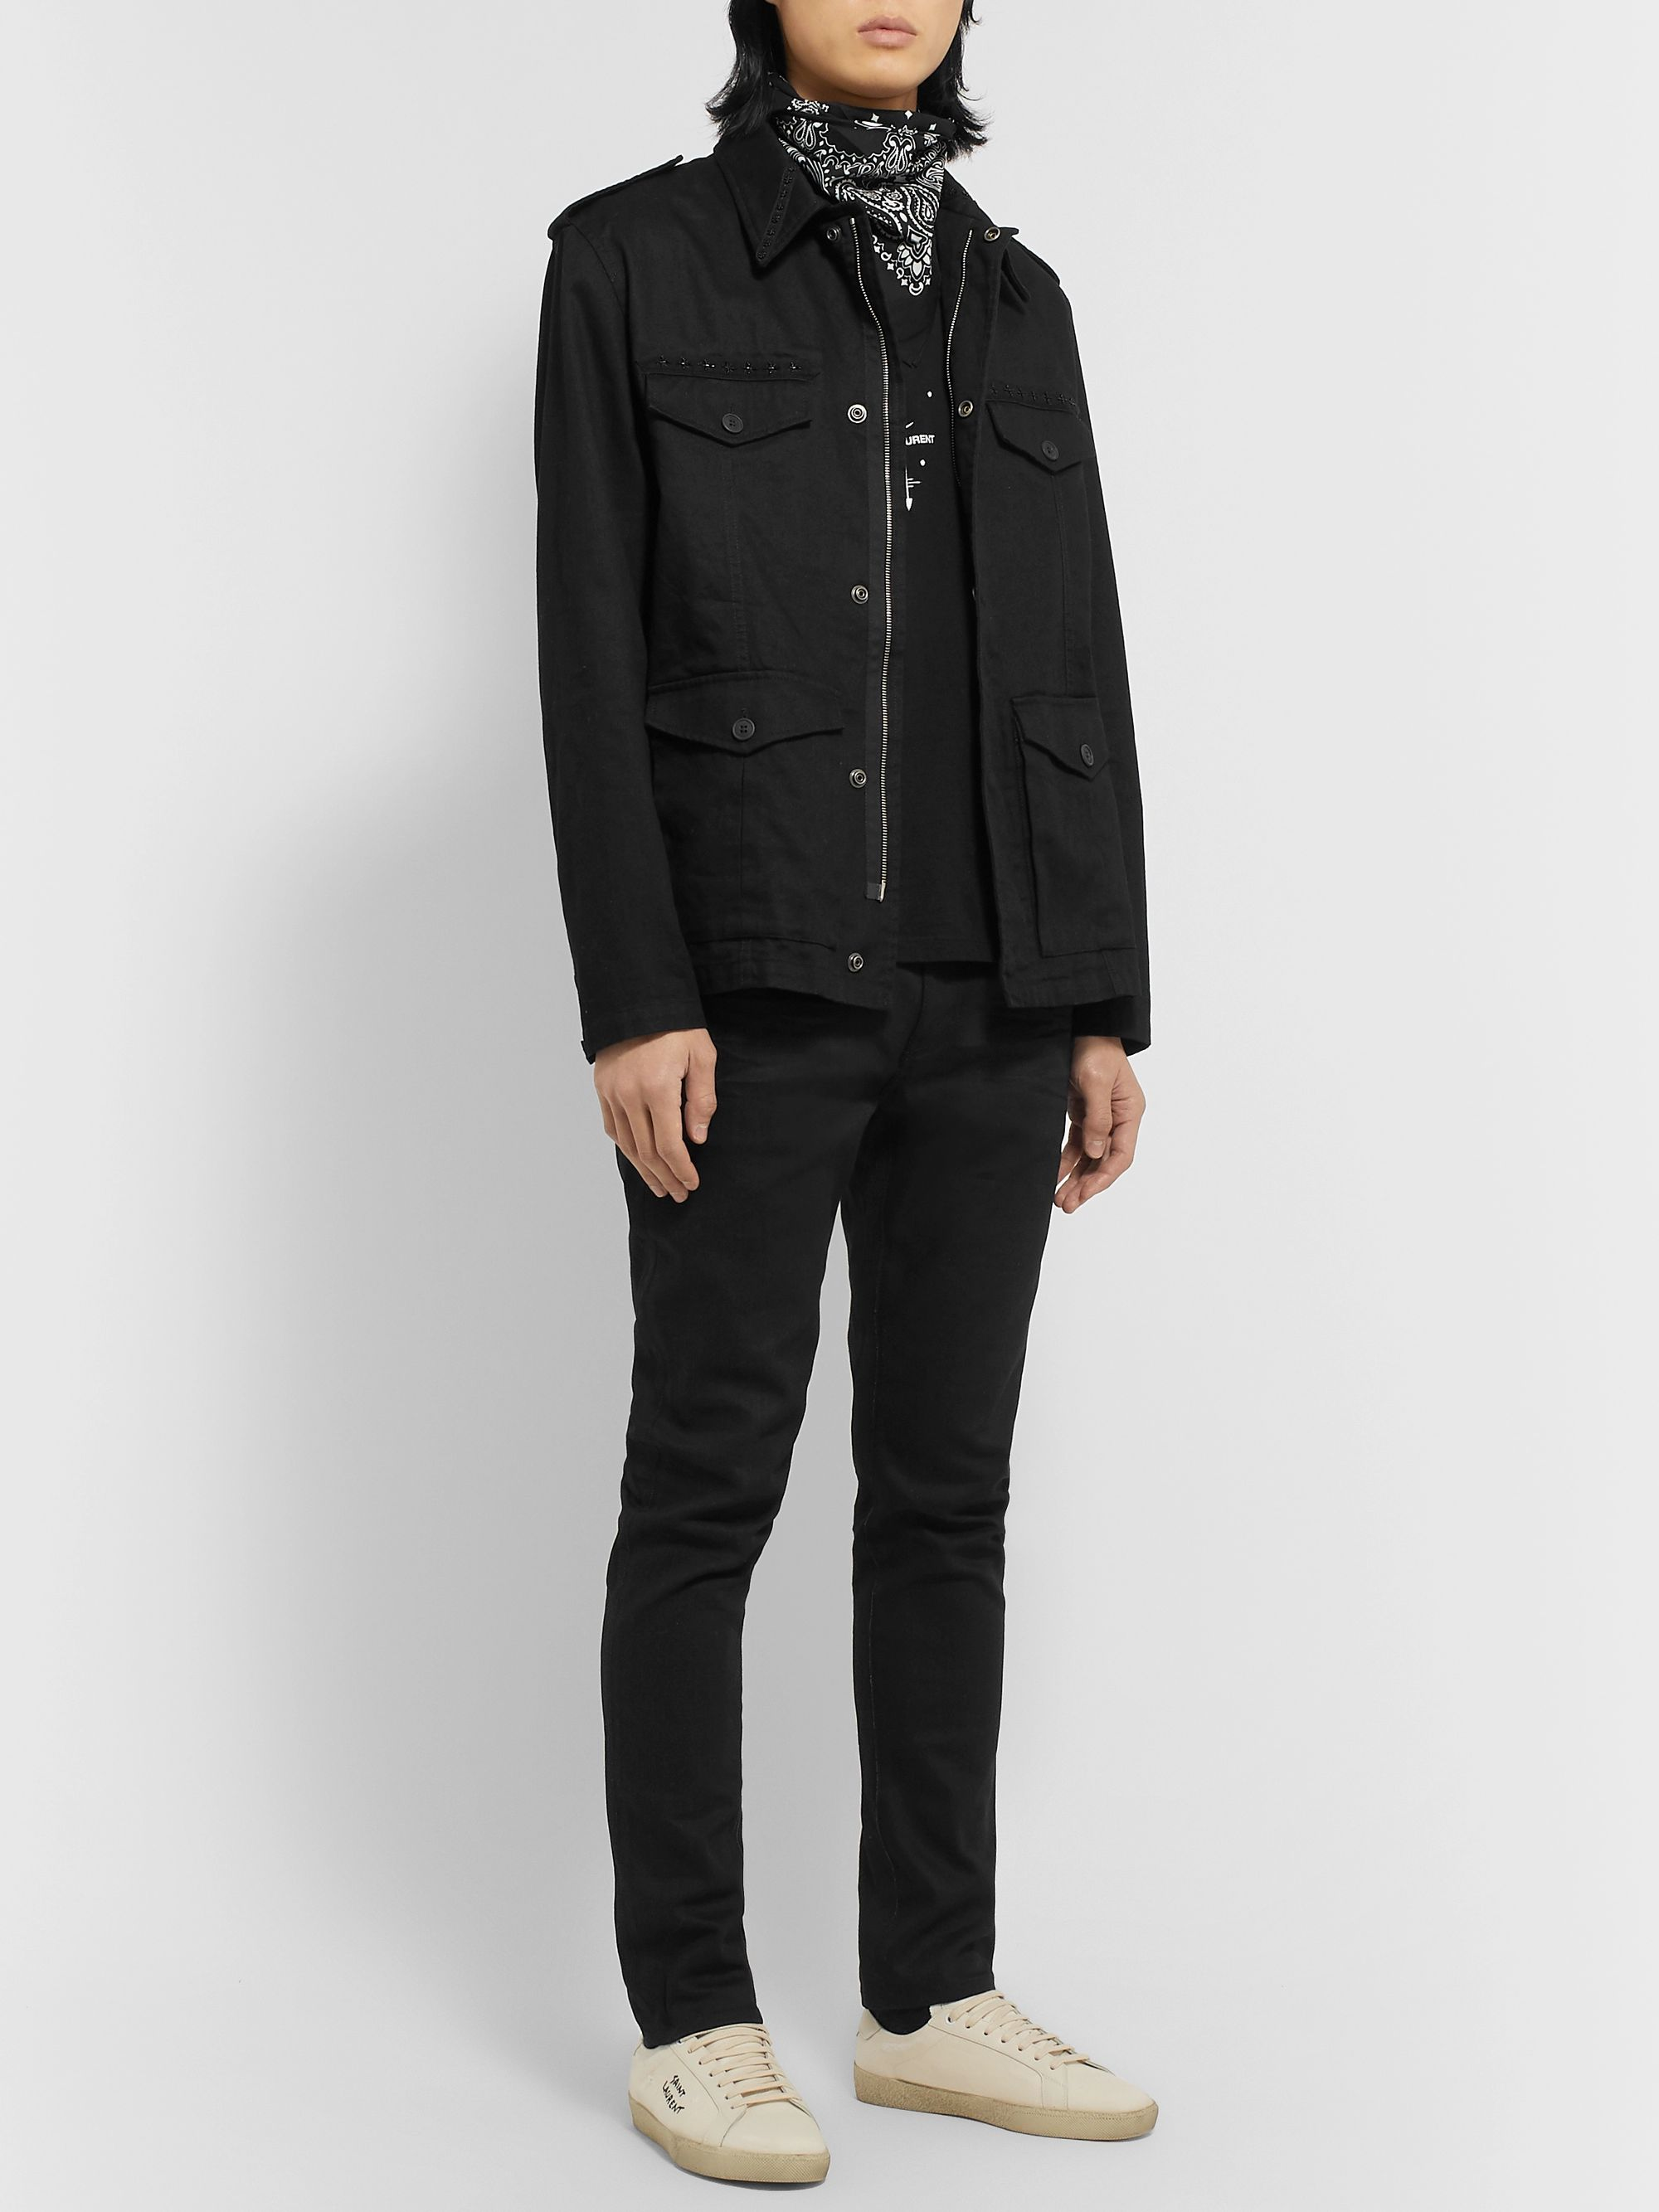 SAINT LAURENT Embellished Cotton and Ramie-Blend Gabardine Jacket